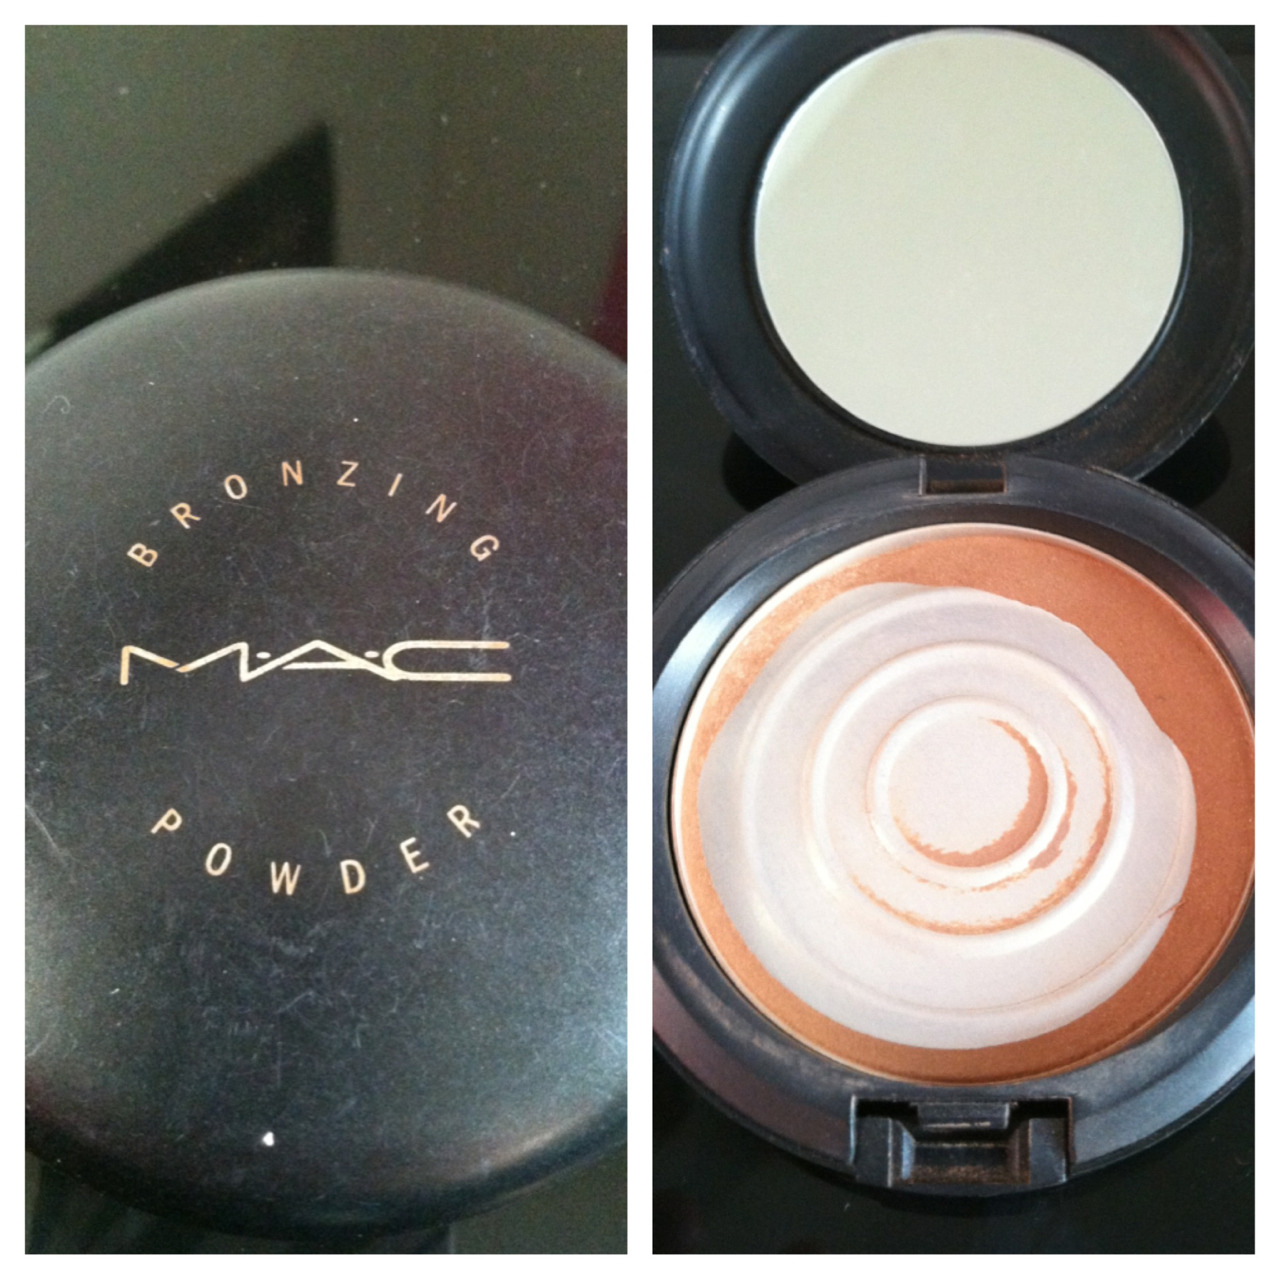 Hitting major pan on my MAC Bronzer.